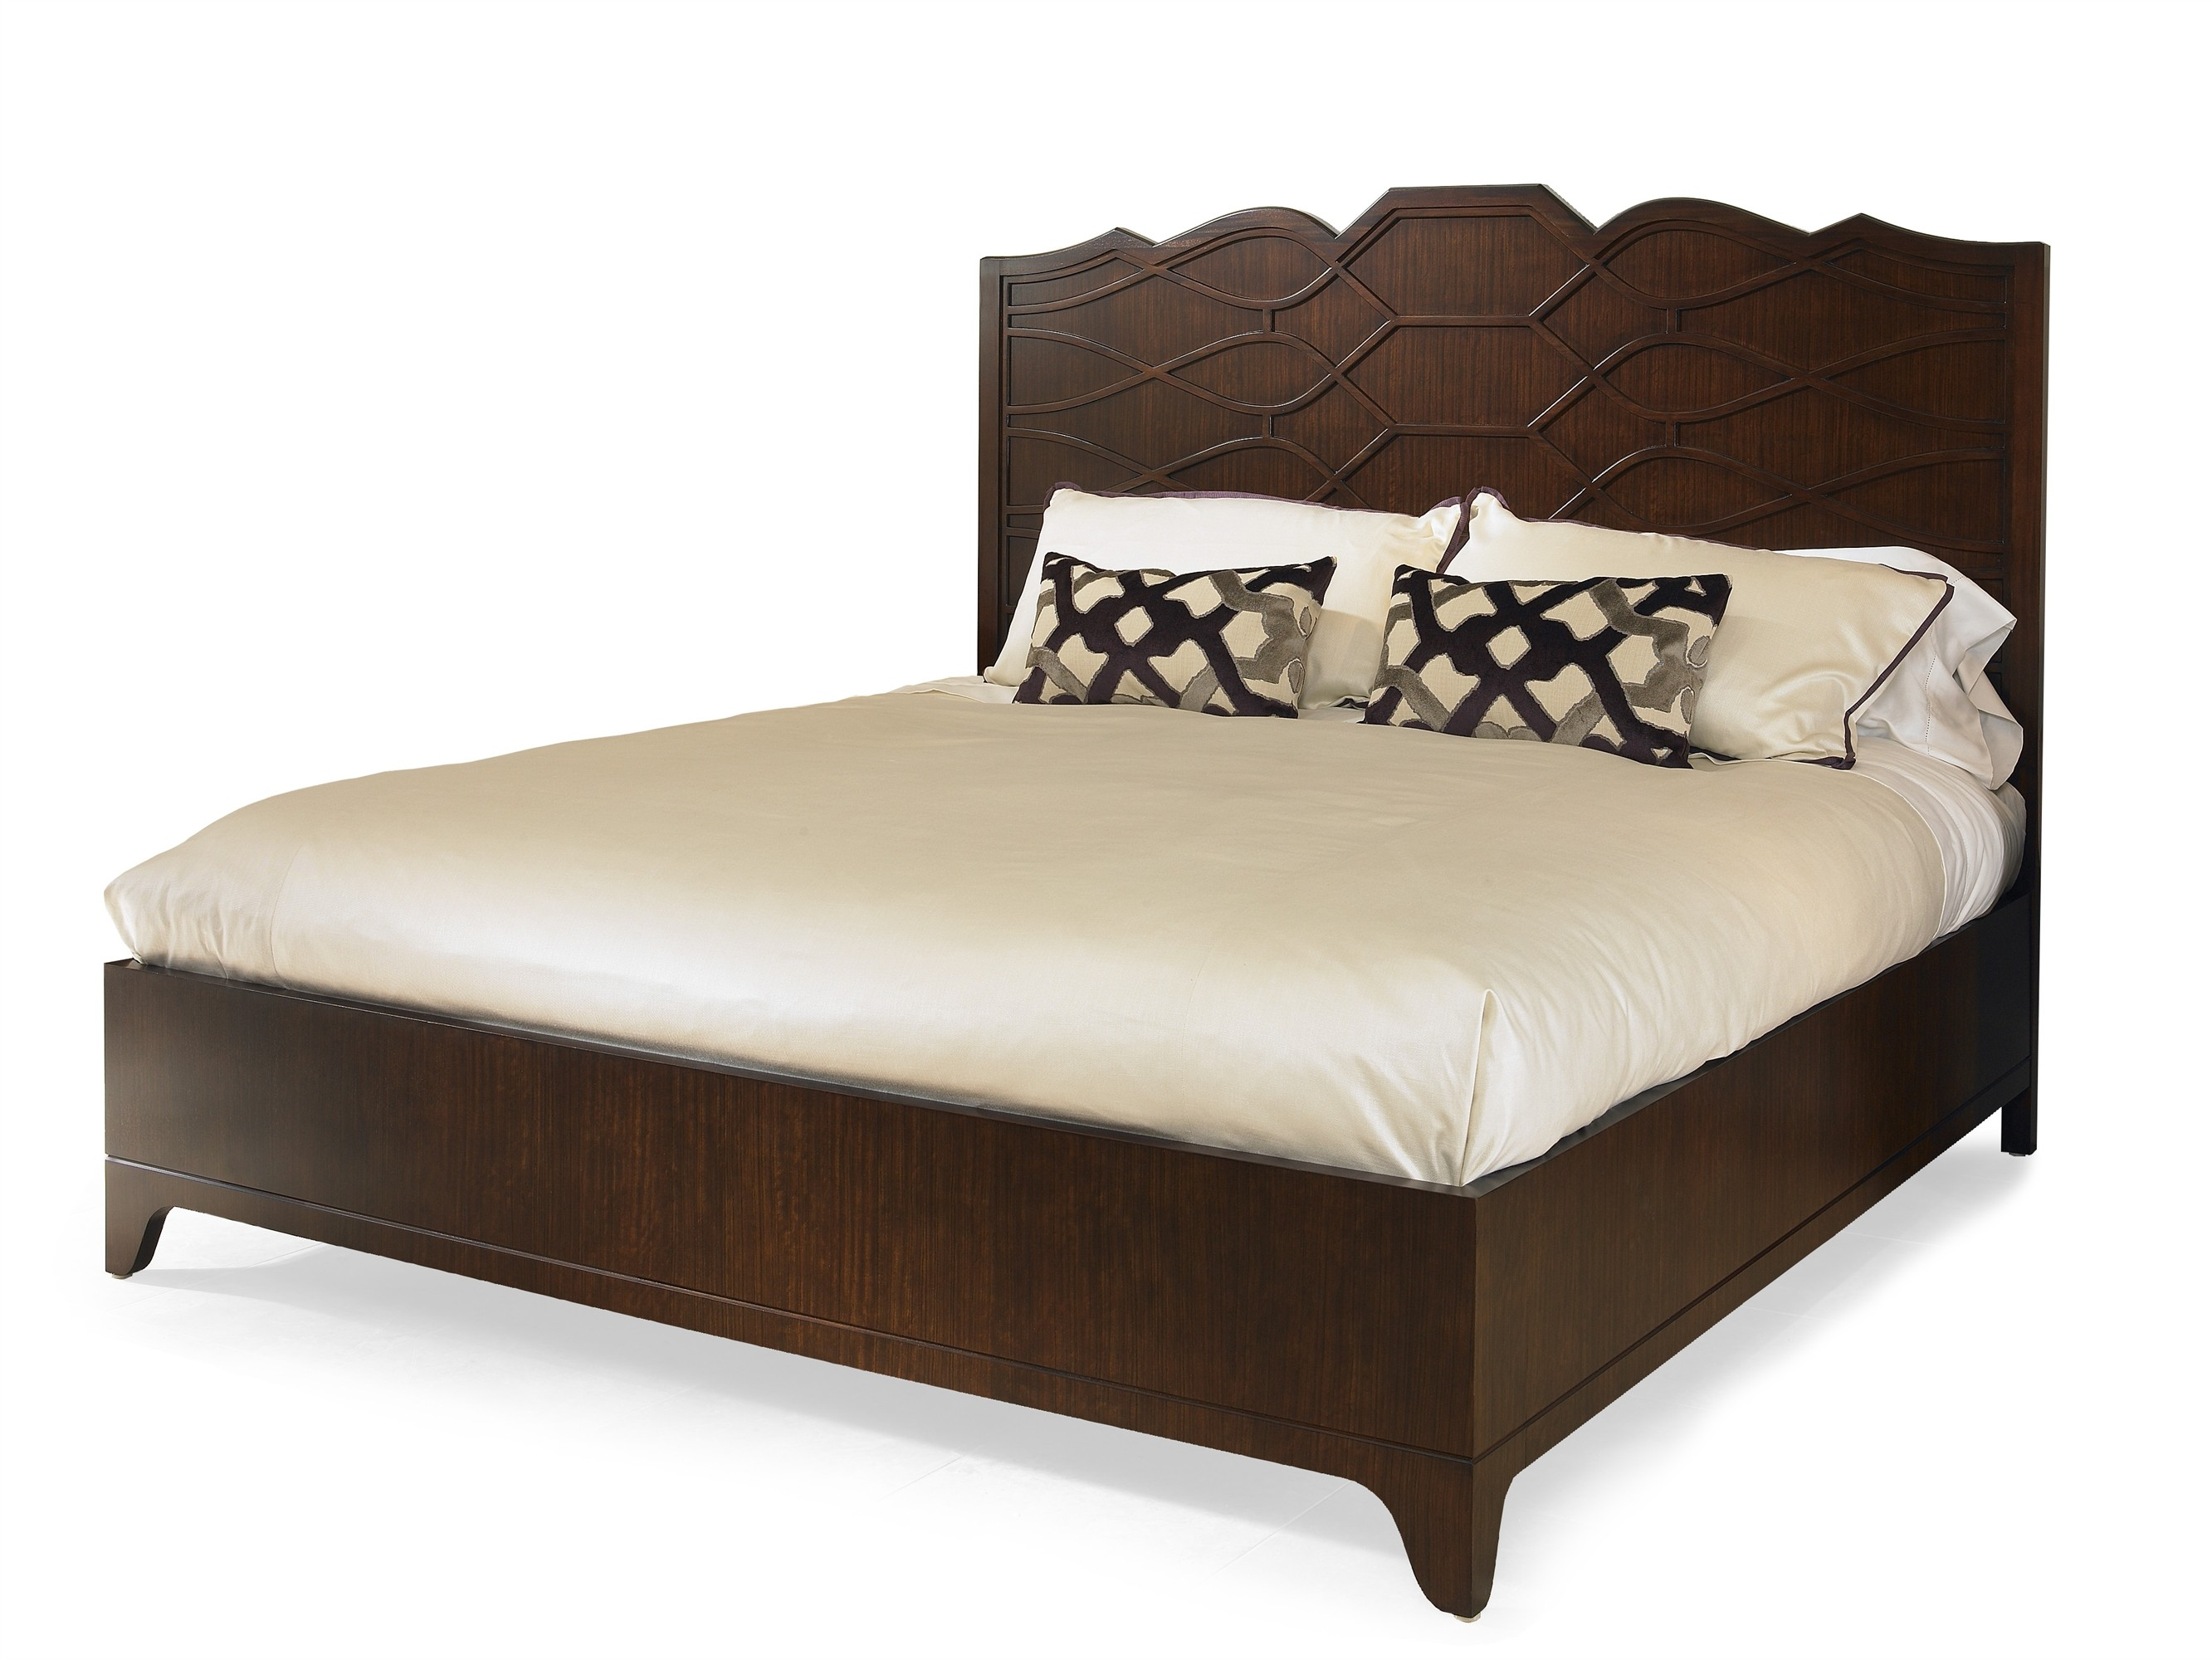 Paragon Club Guimand Bed - King Size 6/6